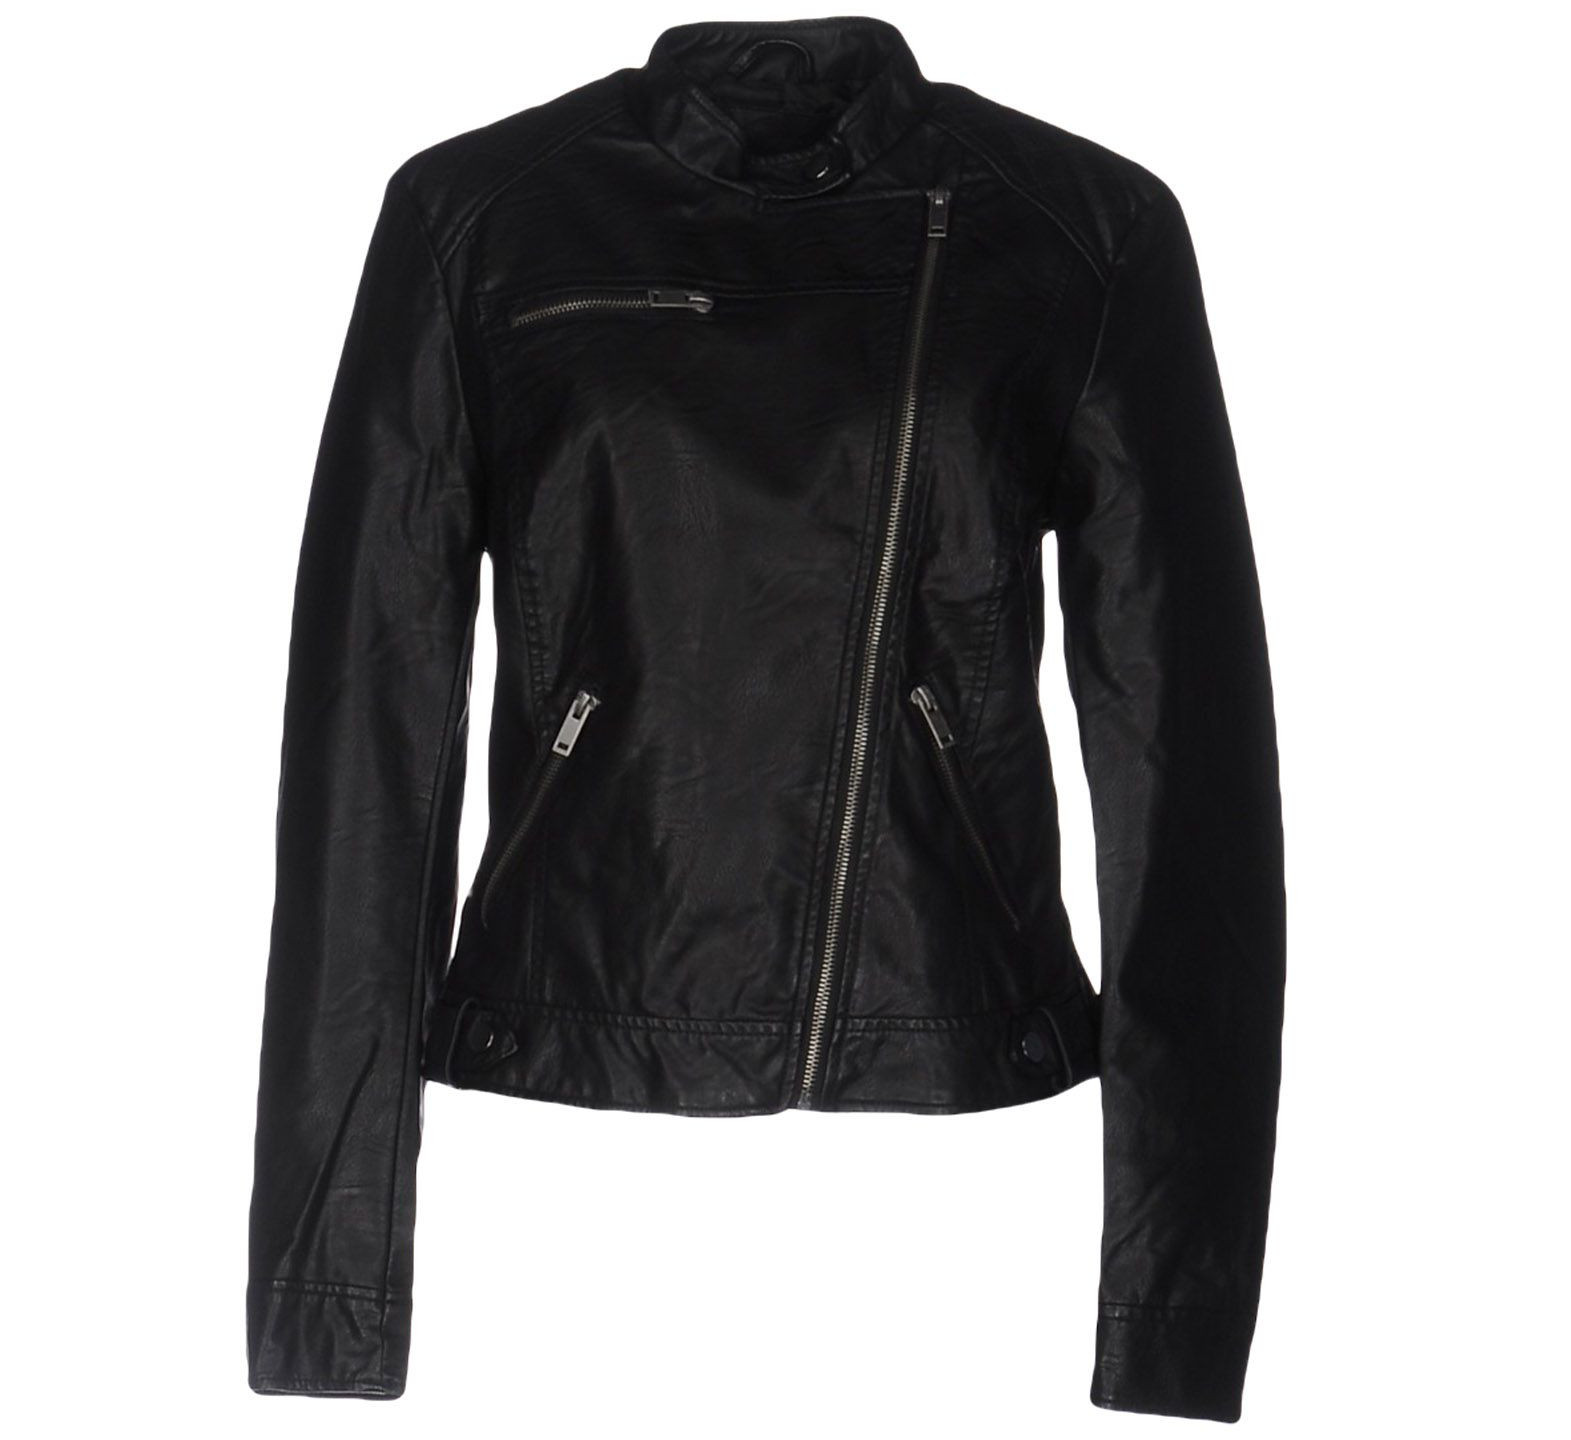 Top it off with a black biker jacket; this one by Vero Moda (non leather) USD 65.00